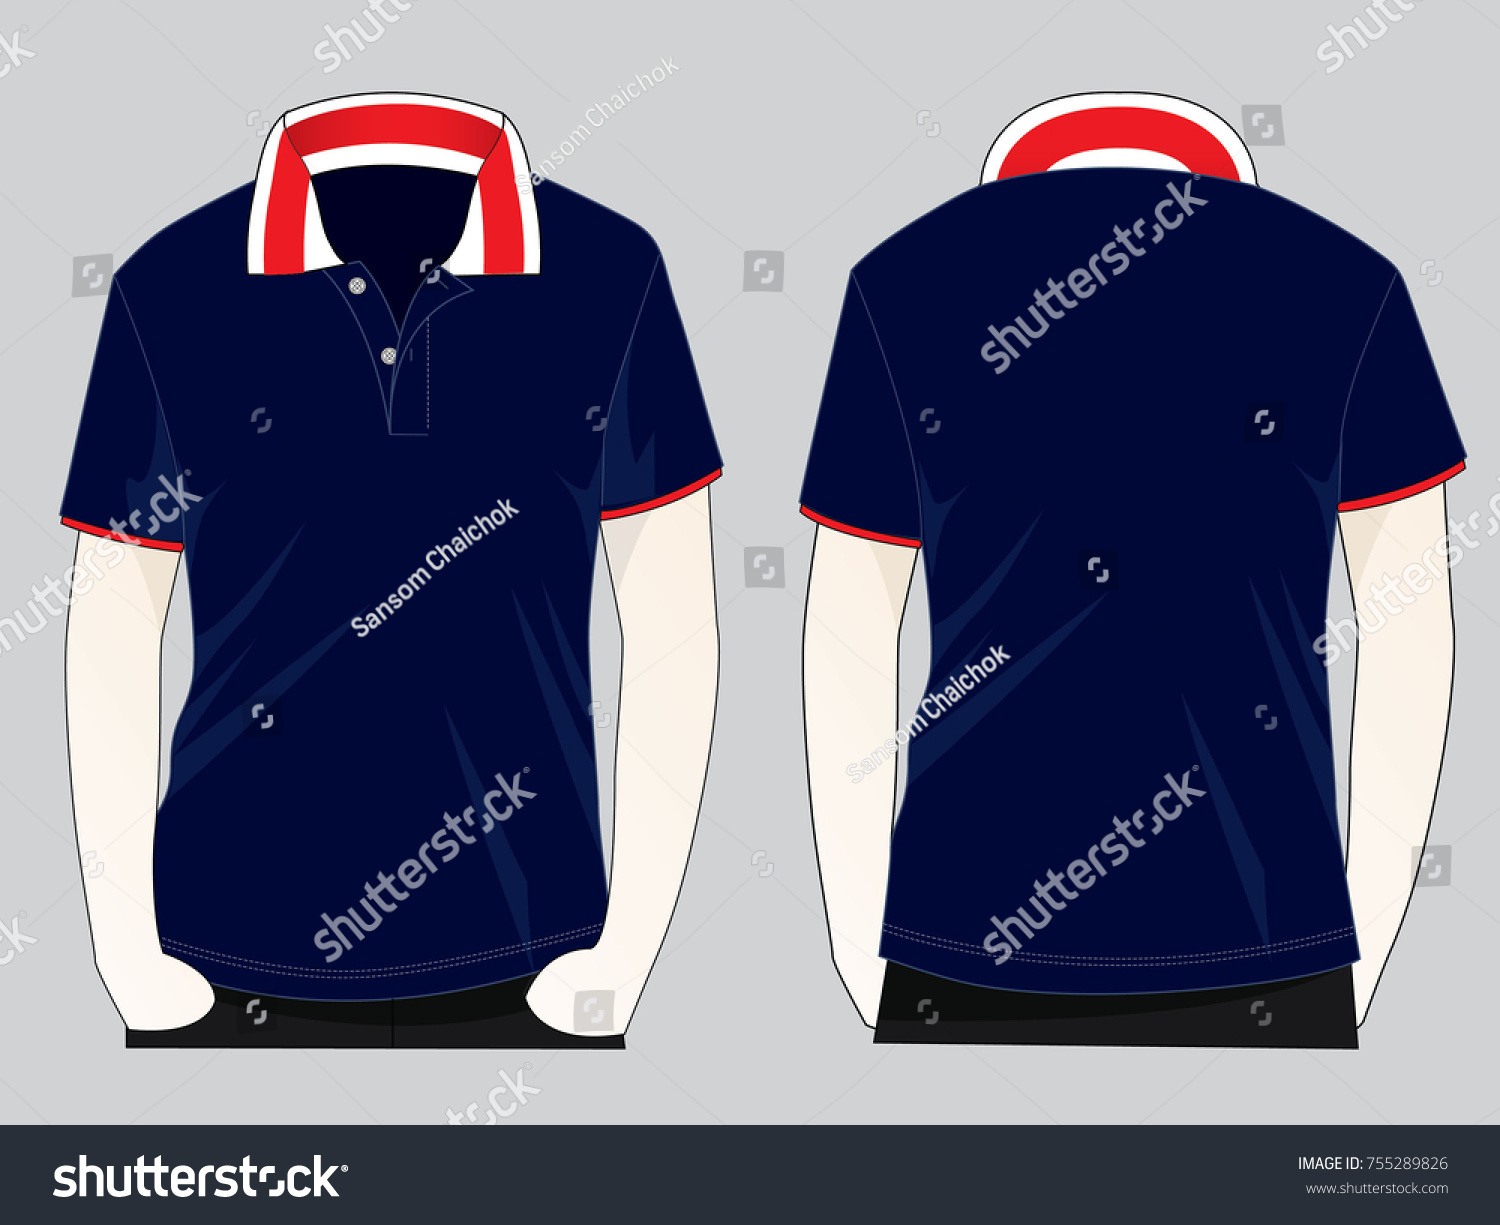 142a99895 Royalty-free stock vector images ID: 755289826. Stripe collar & Navy blue  polo shirt design - Vector